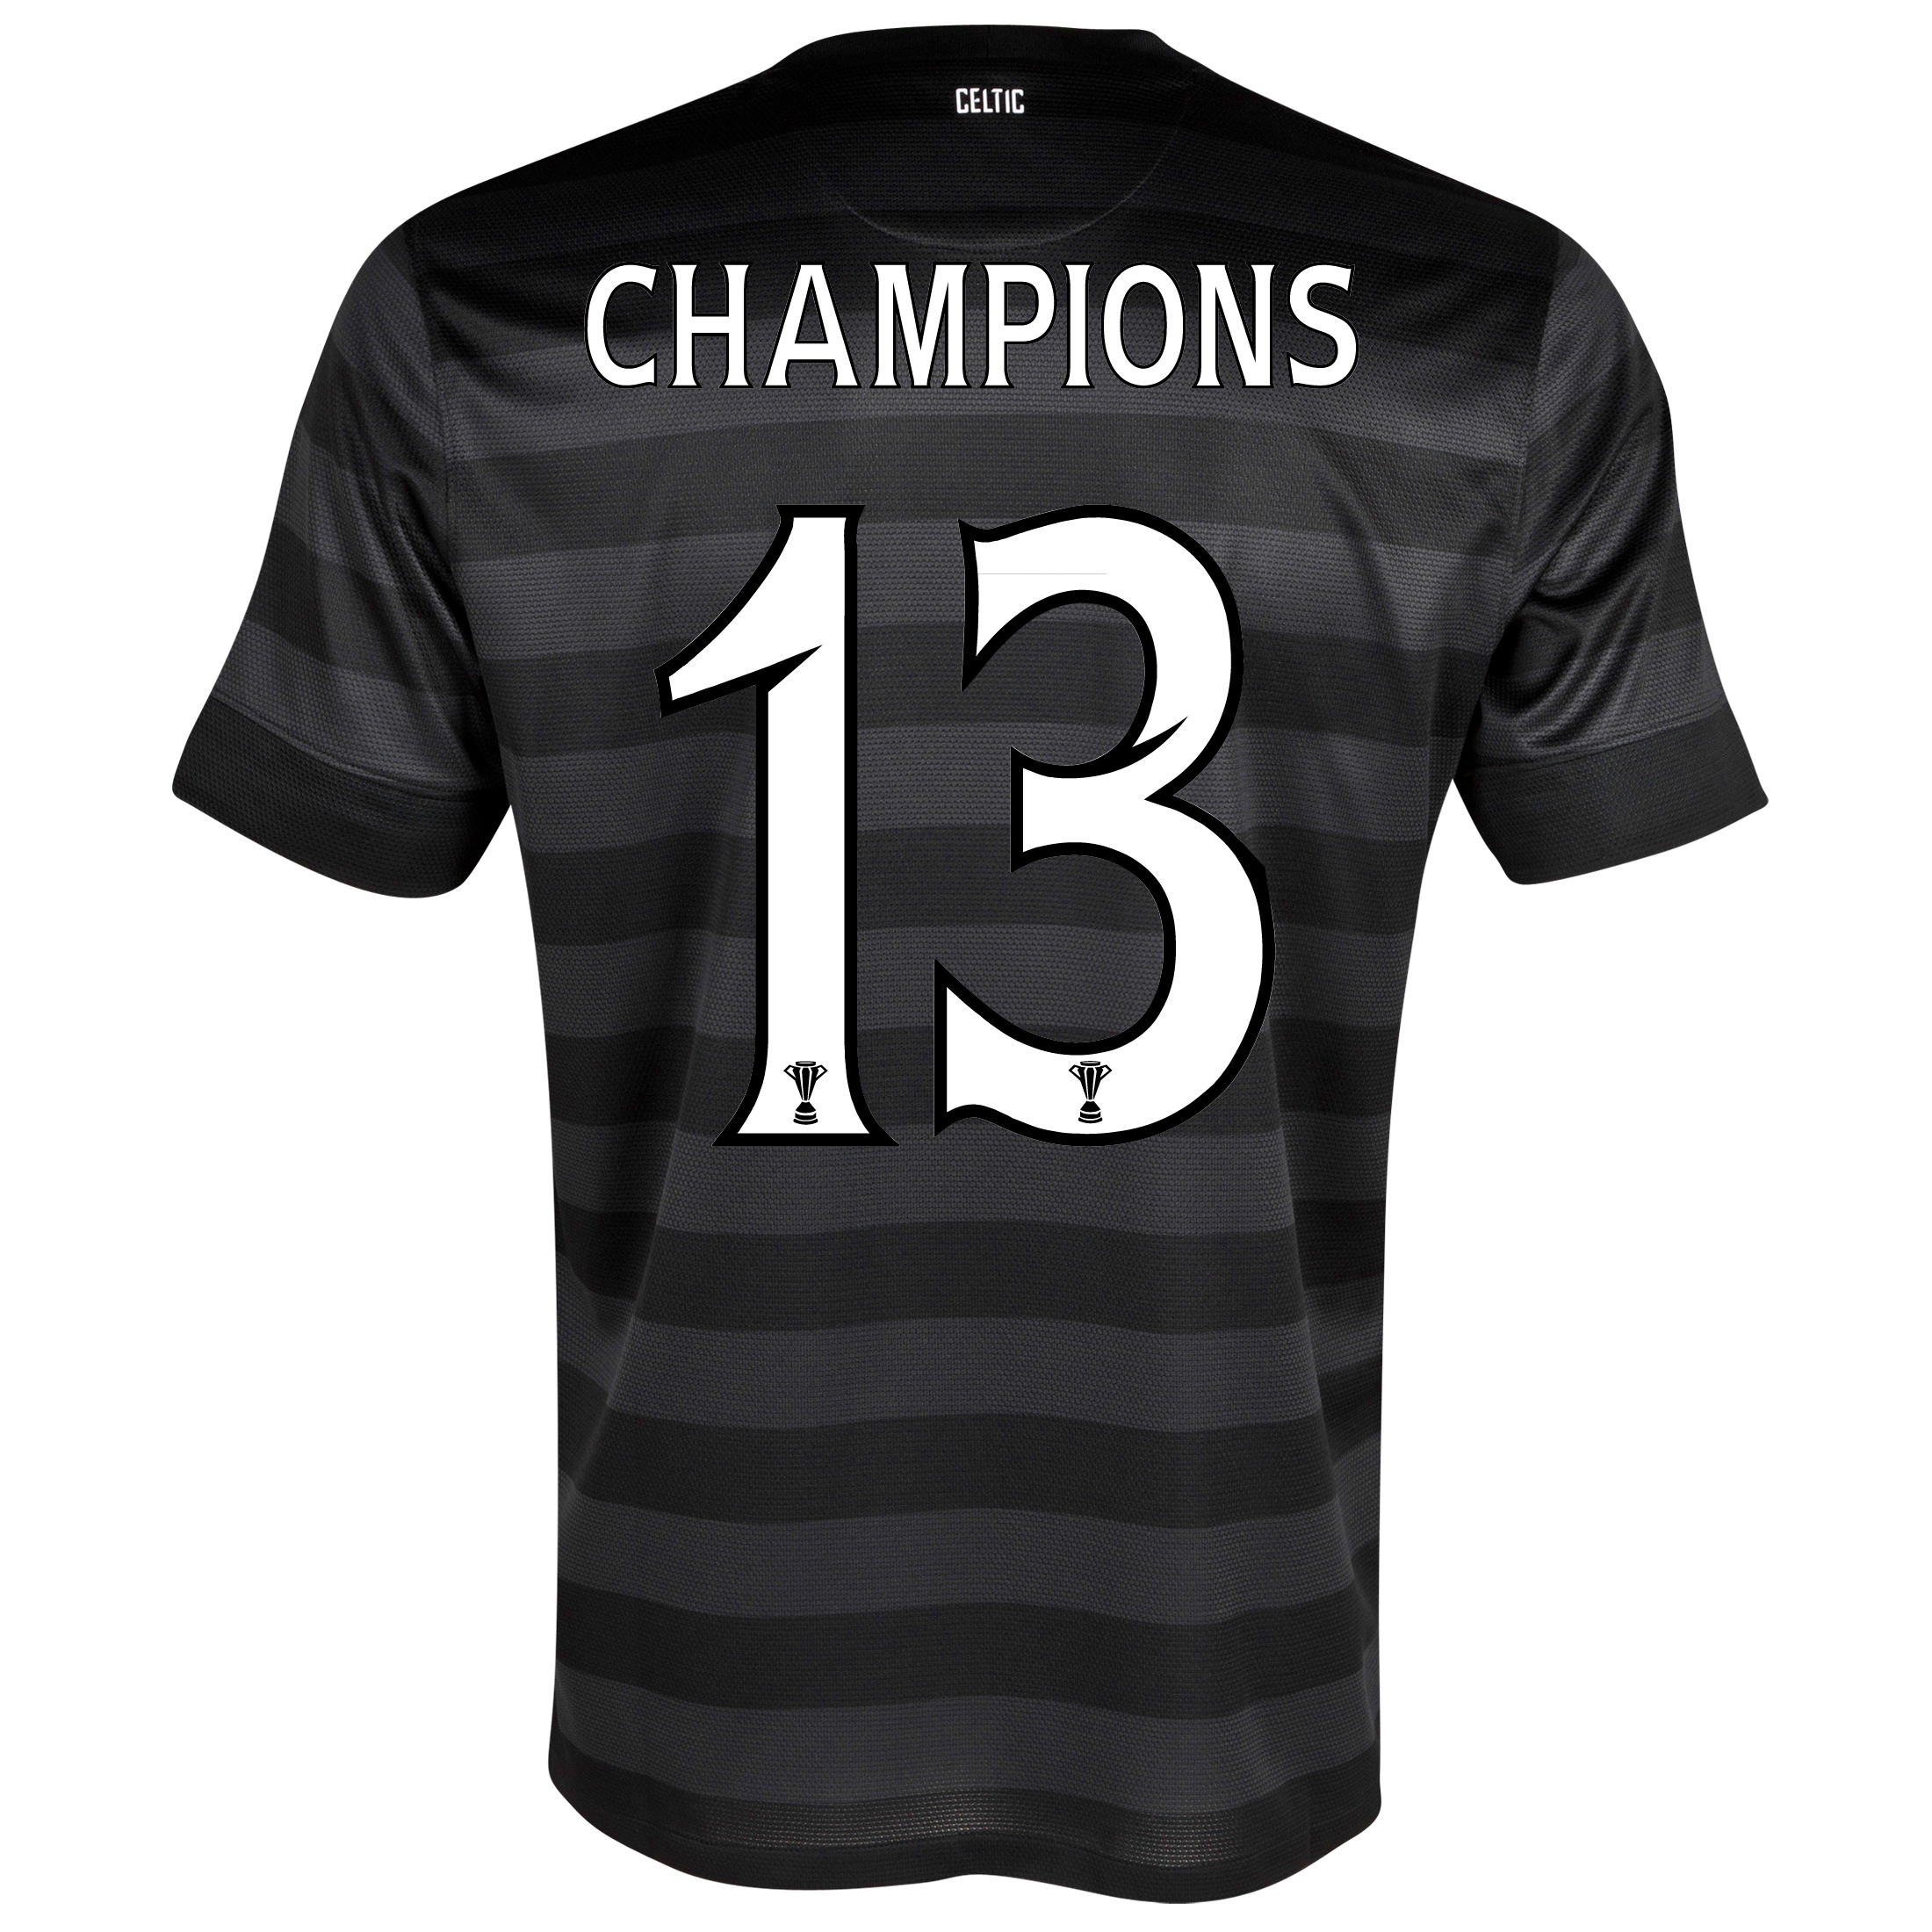 Celtic Away Shirt 2012/13 -  Kids with Champions 13 printing